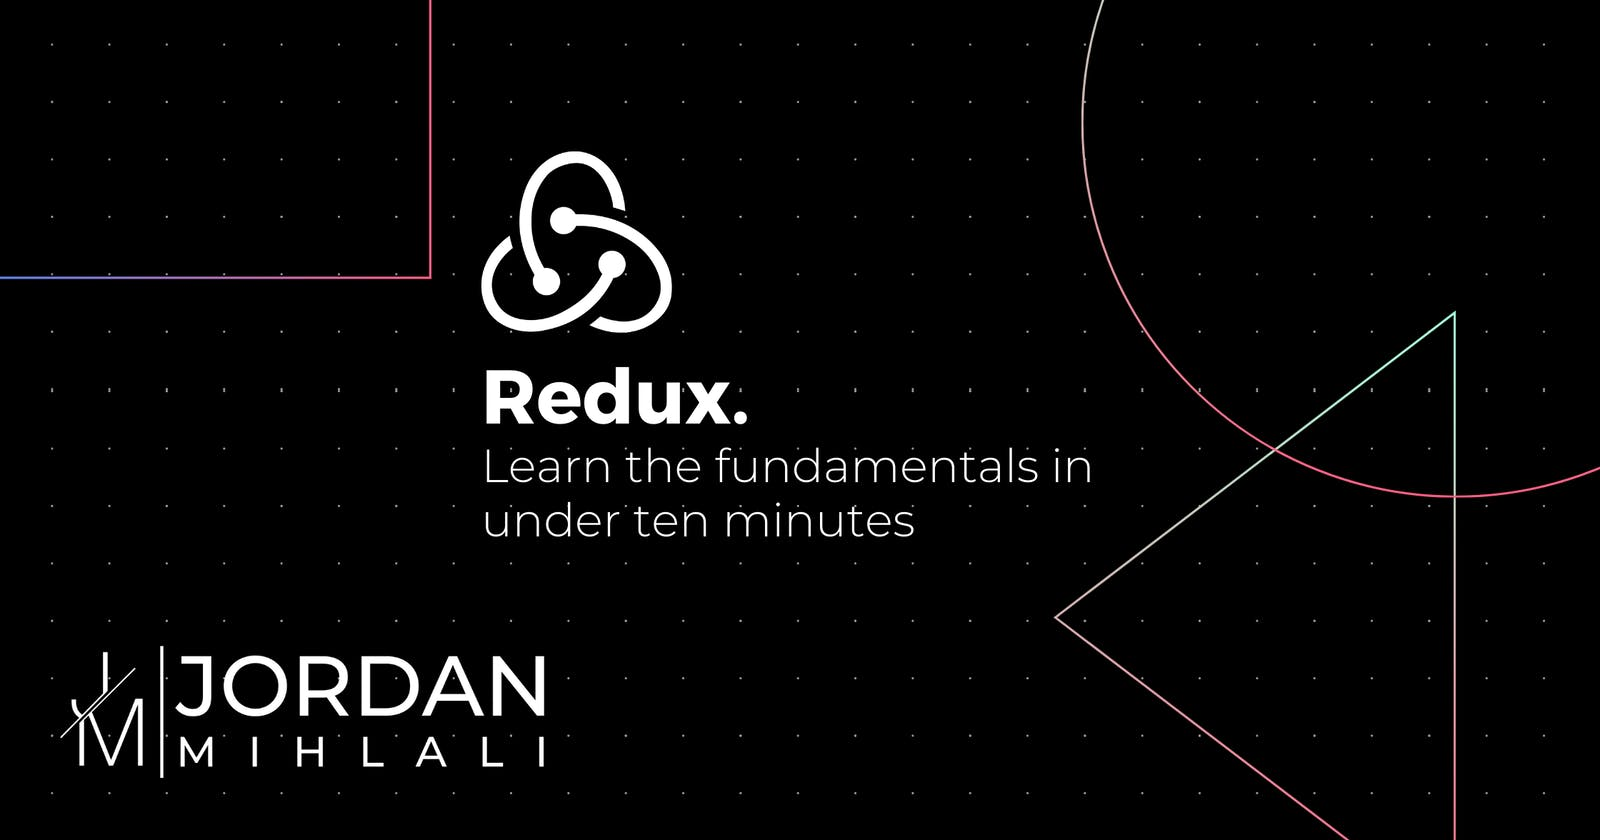 Redux basics in less than five minutes